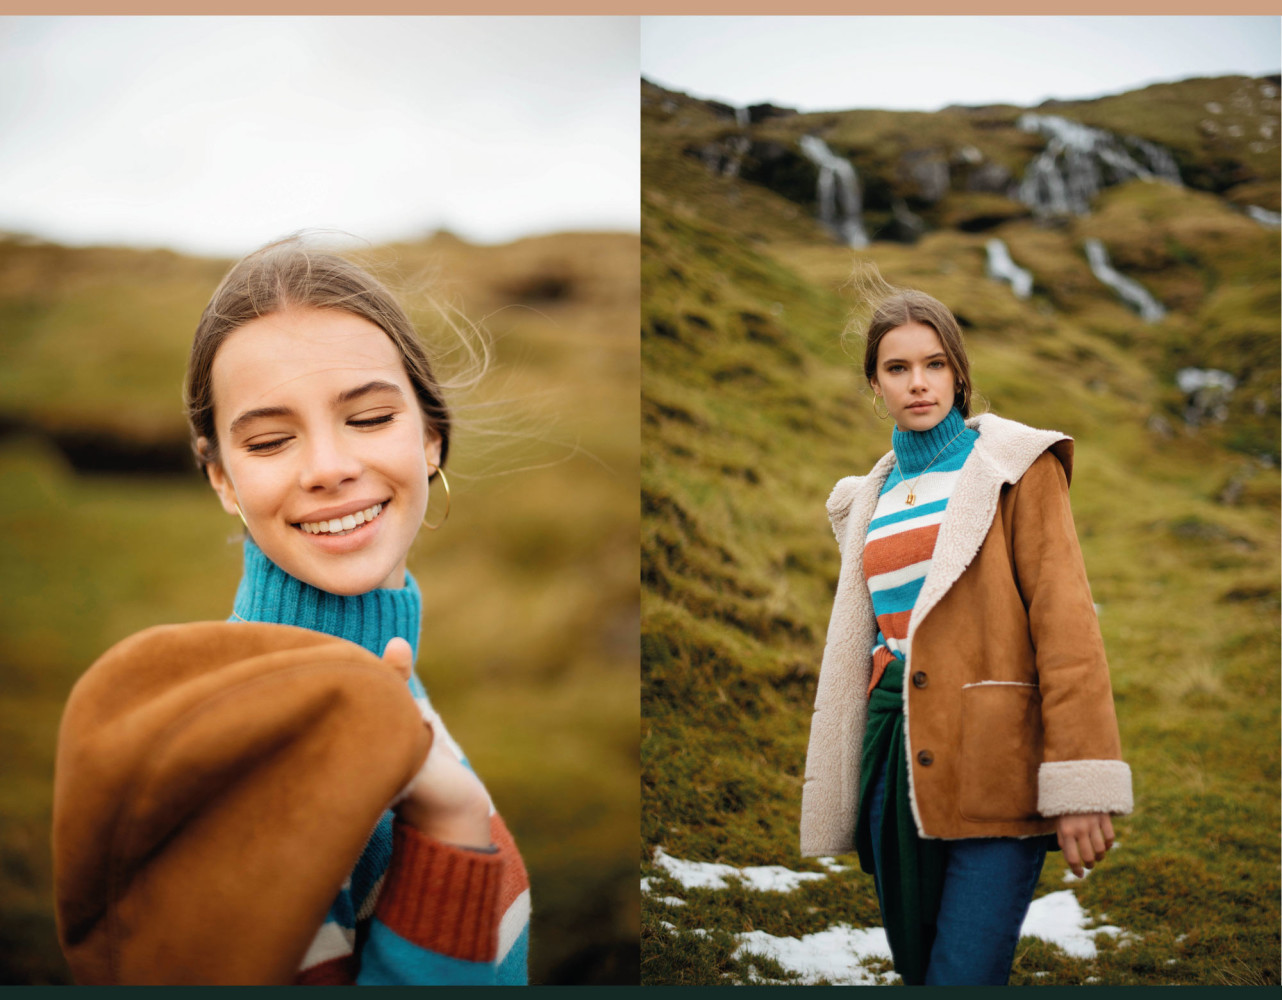 Brownie New campaign with Wiktoria F.